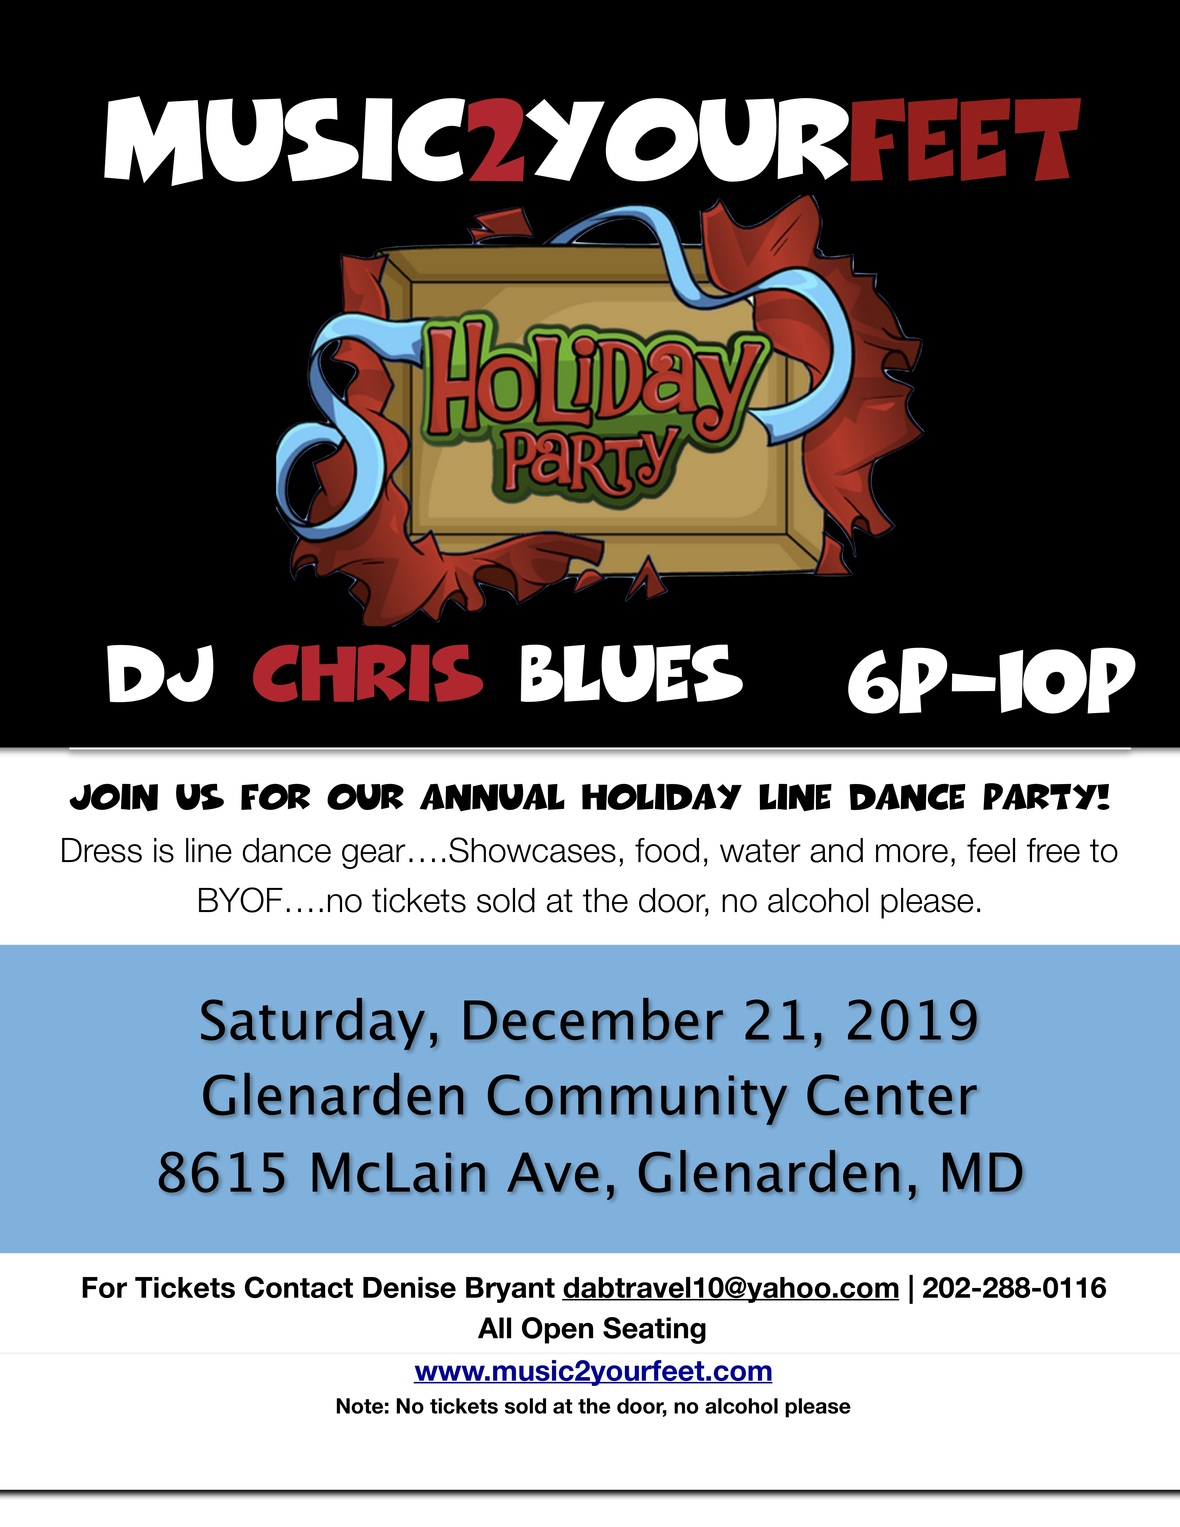 M2YF Holiday Line Dance Party 2019